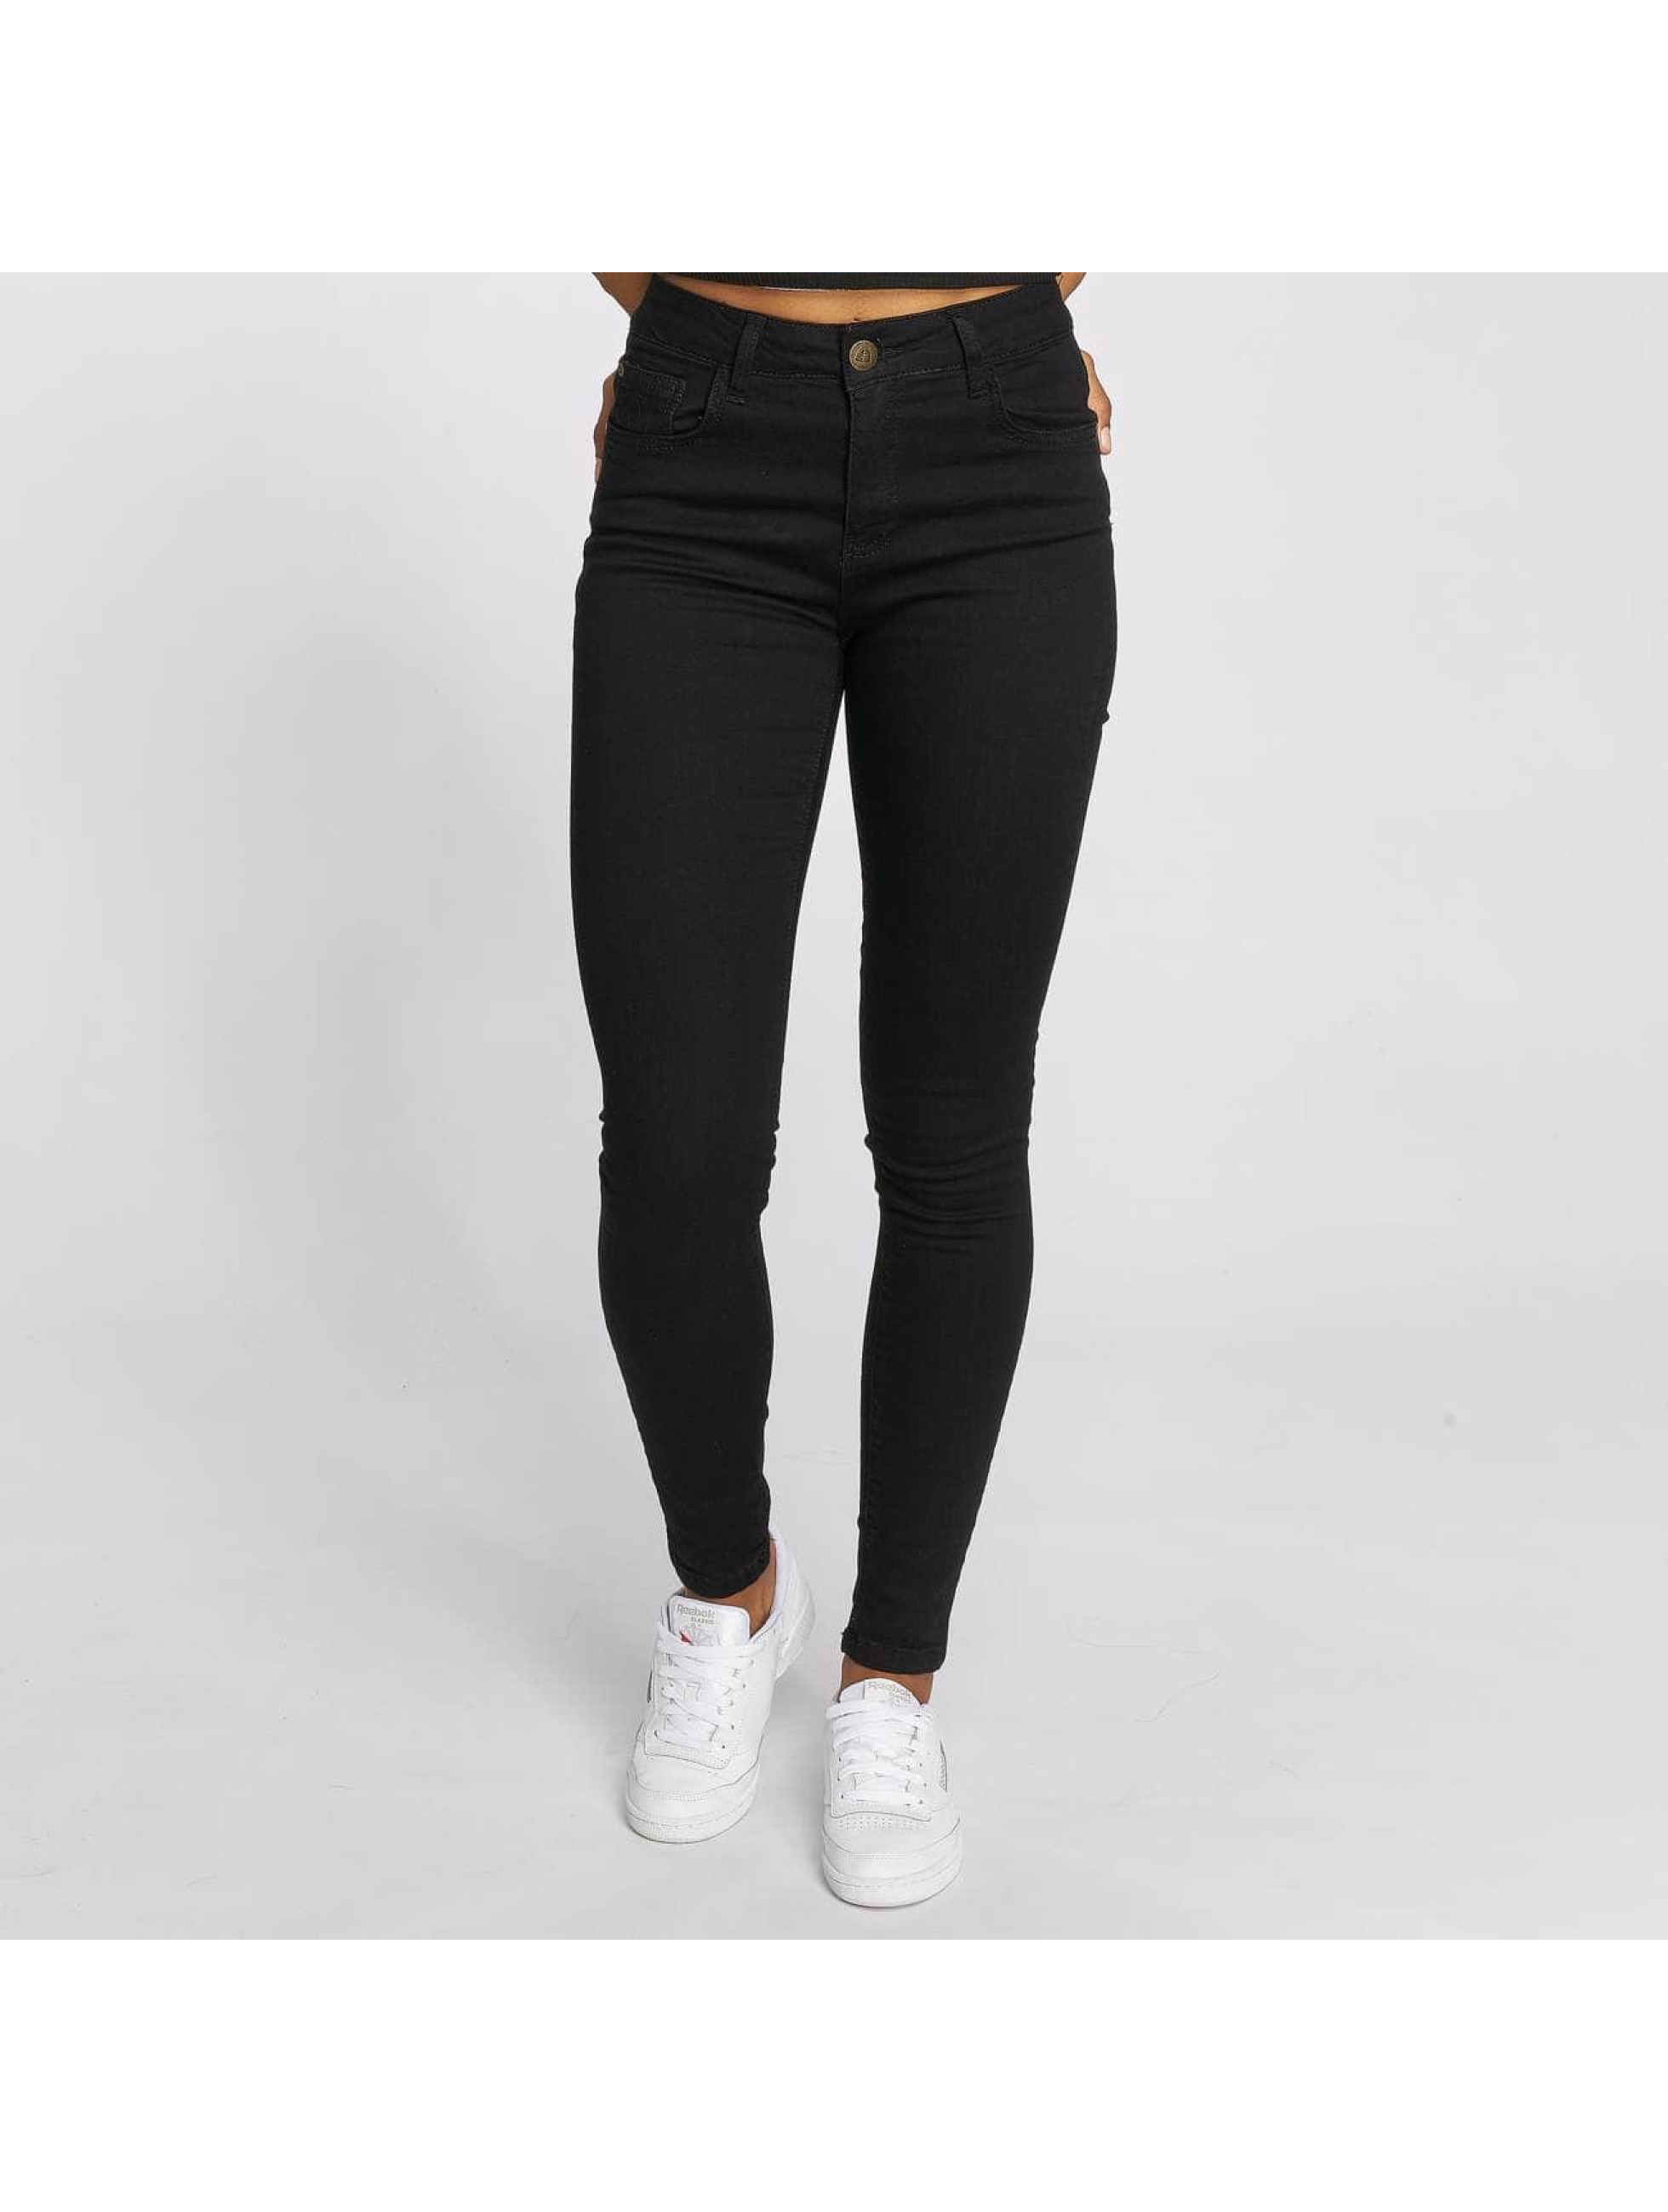 Just Rhyse / Skinny Jeans Buttercup in black W 30